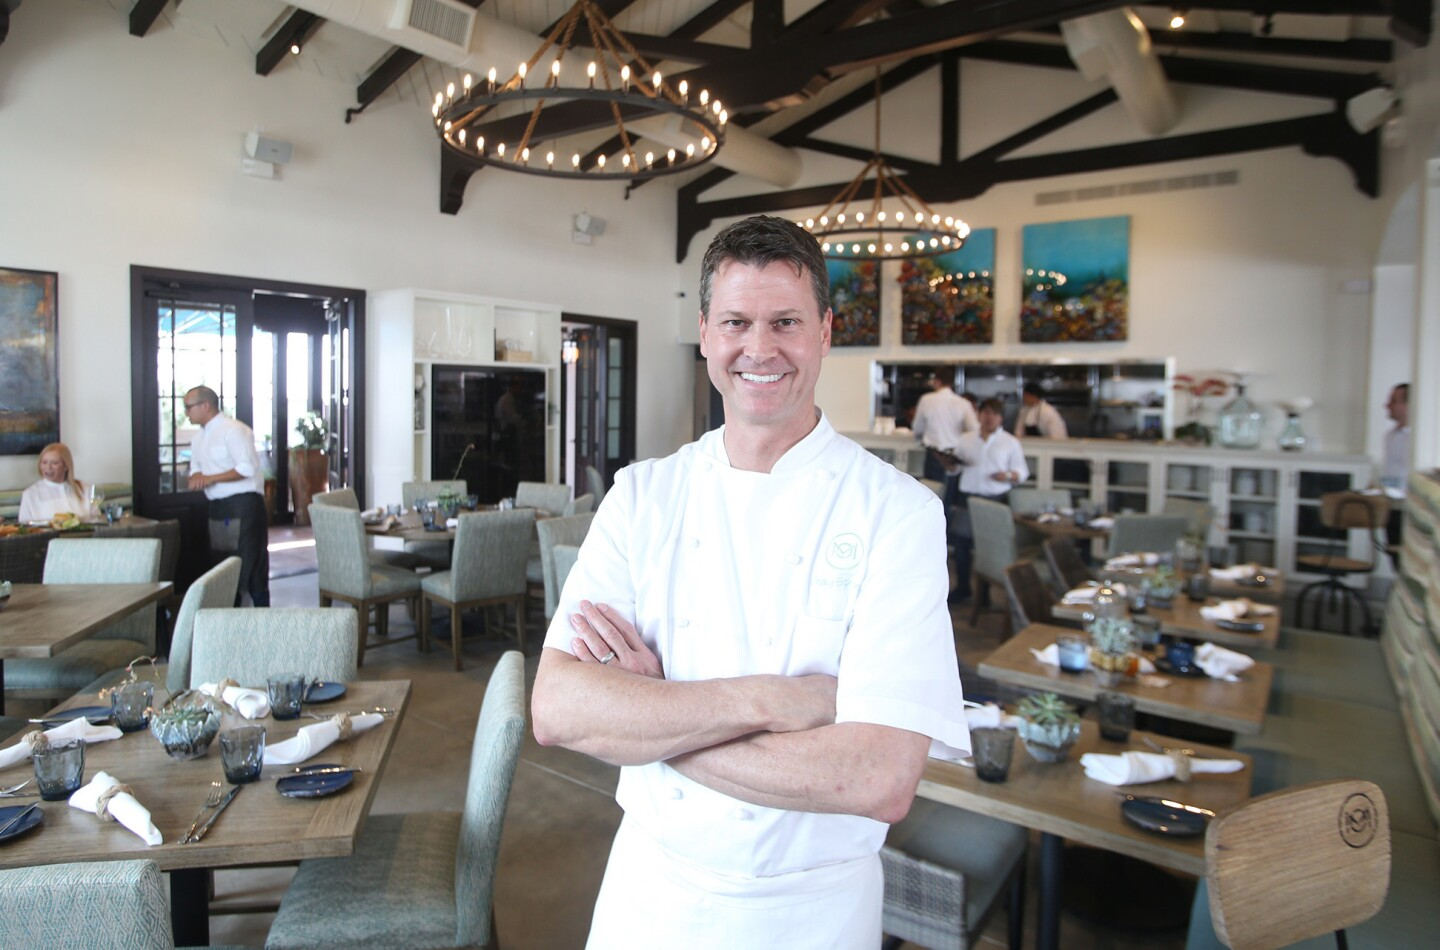 Ocean at Main restaurant opens in Laguna Beach